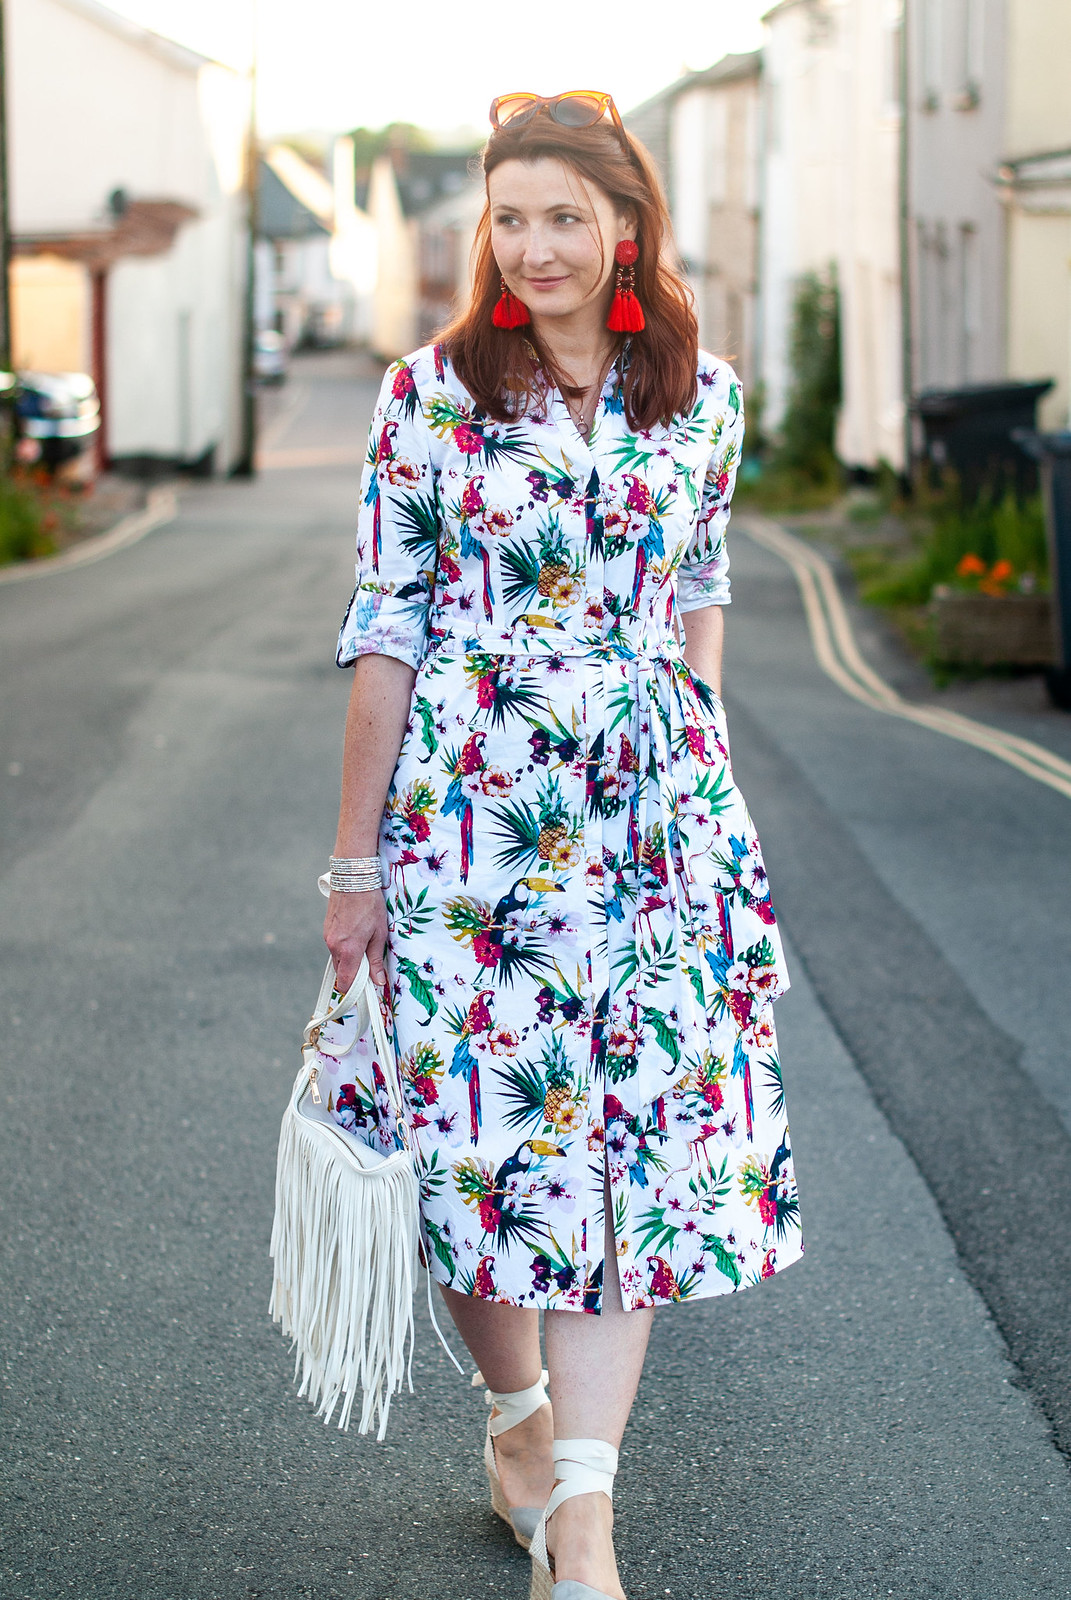 Florals With a Twist | A Loud Birds & Tropical Print \ tropical print midi shirt dress \ grey lace-up espadrilles \ red tassel earrings \ white fringed crossbody bag | Not Dressed As Lamb, over 40 style